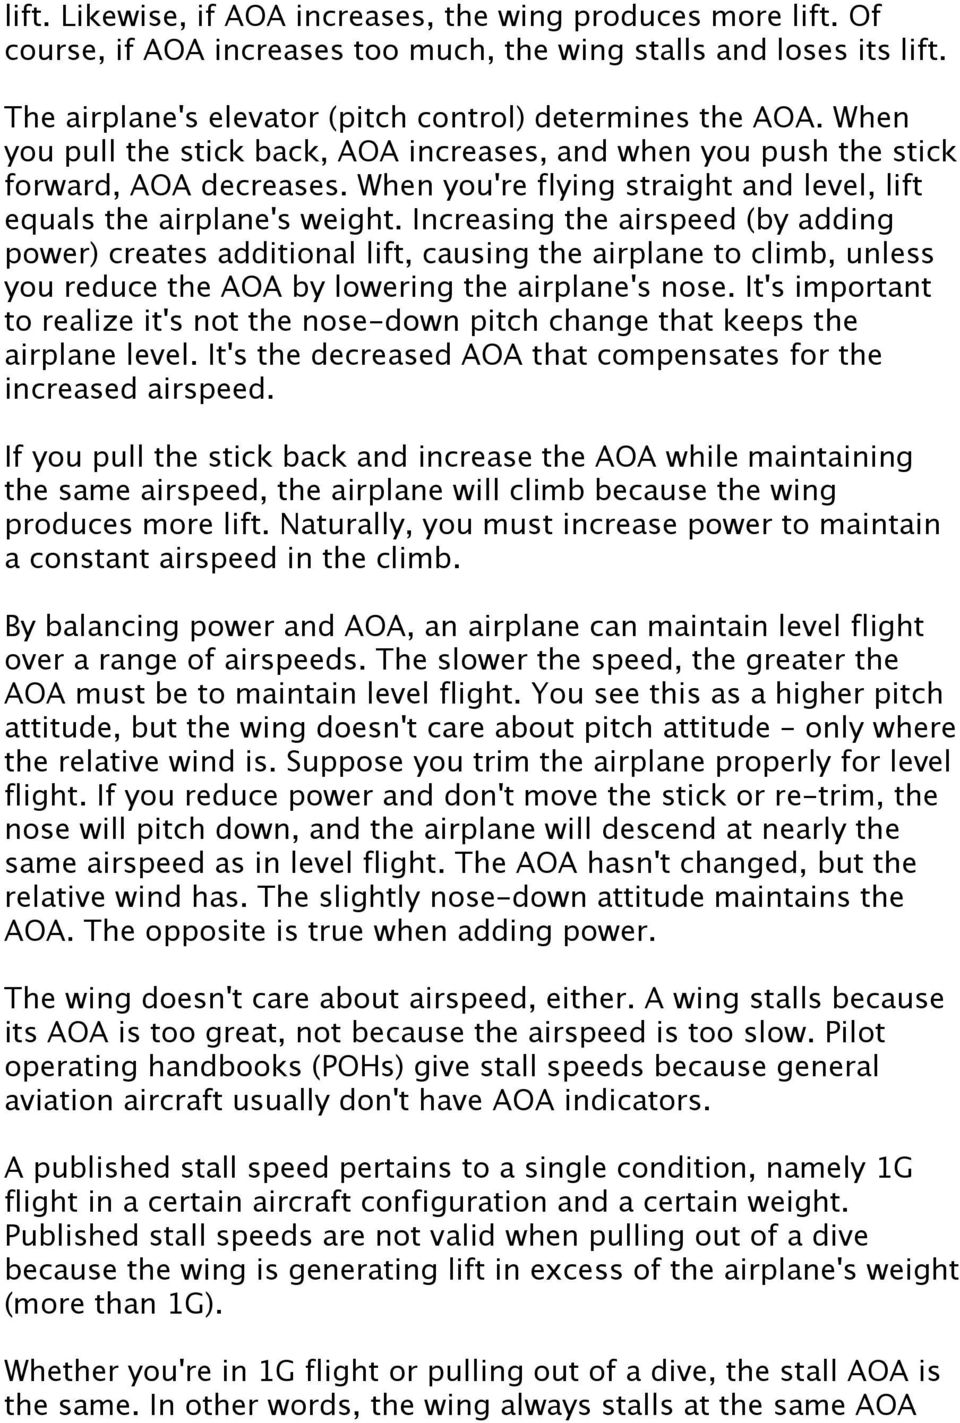 Increasing the airspeed (by adding power) creates additional lift, causing the airplane to climb, unless you reduce the AOA by lowering the airplane's nose.